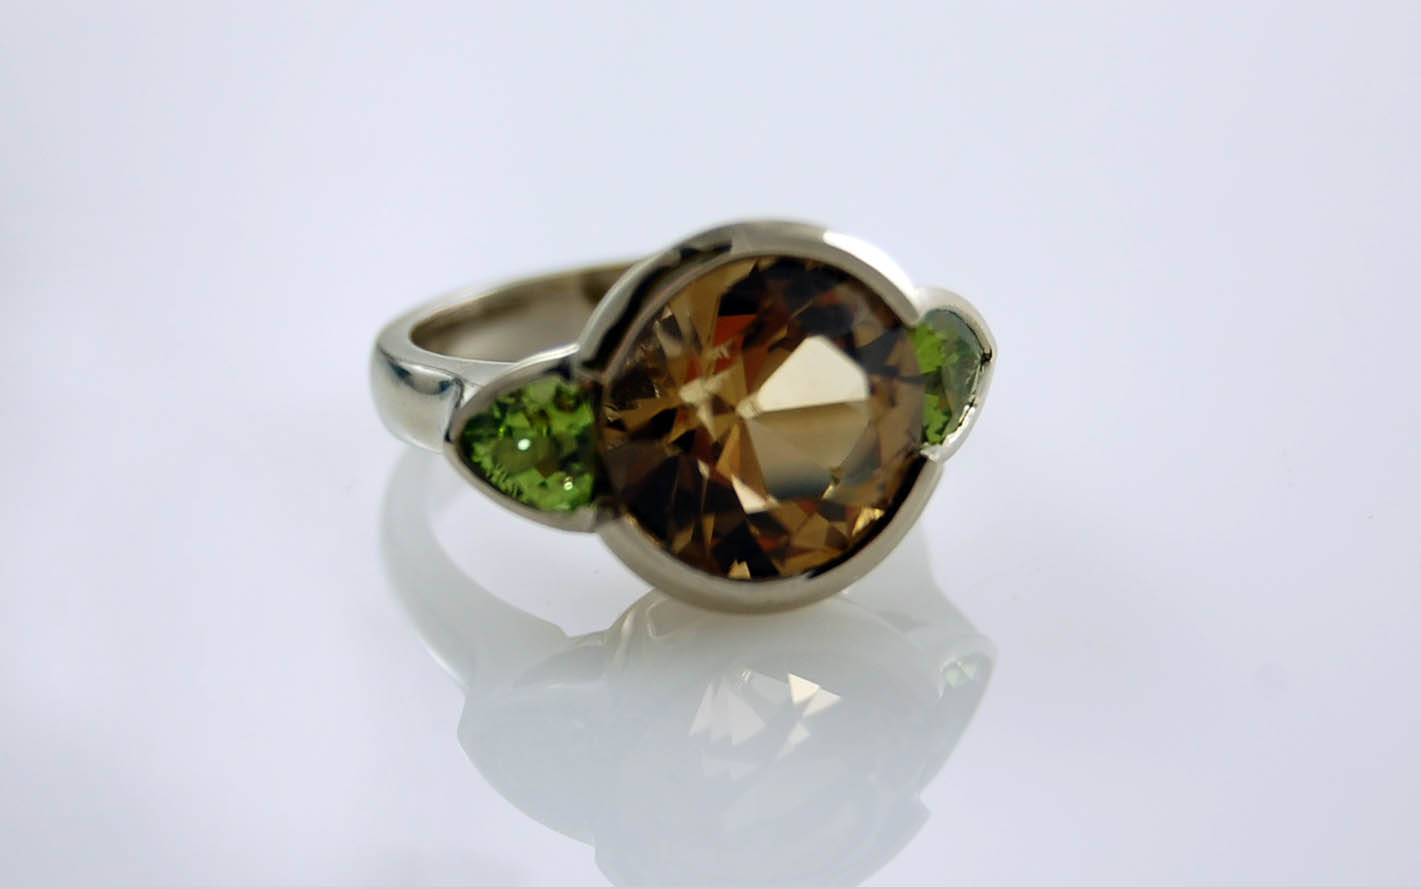 11.5mm Smokey Quartz & 5mm Trillion Peridot